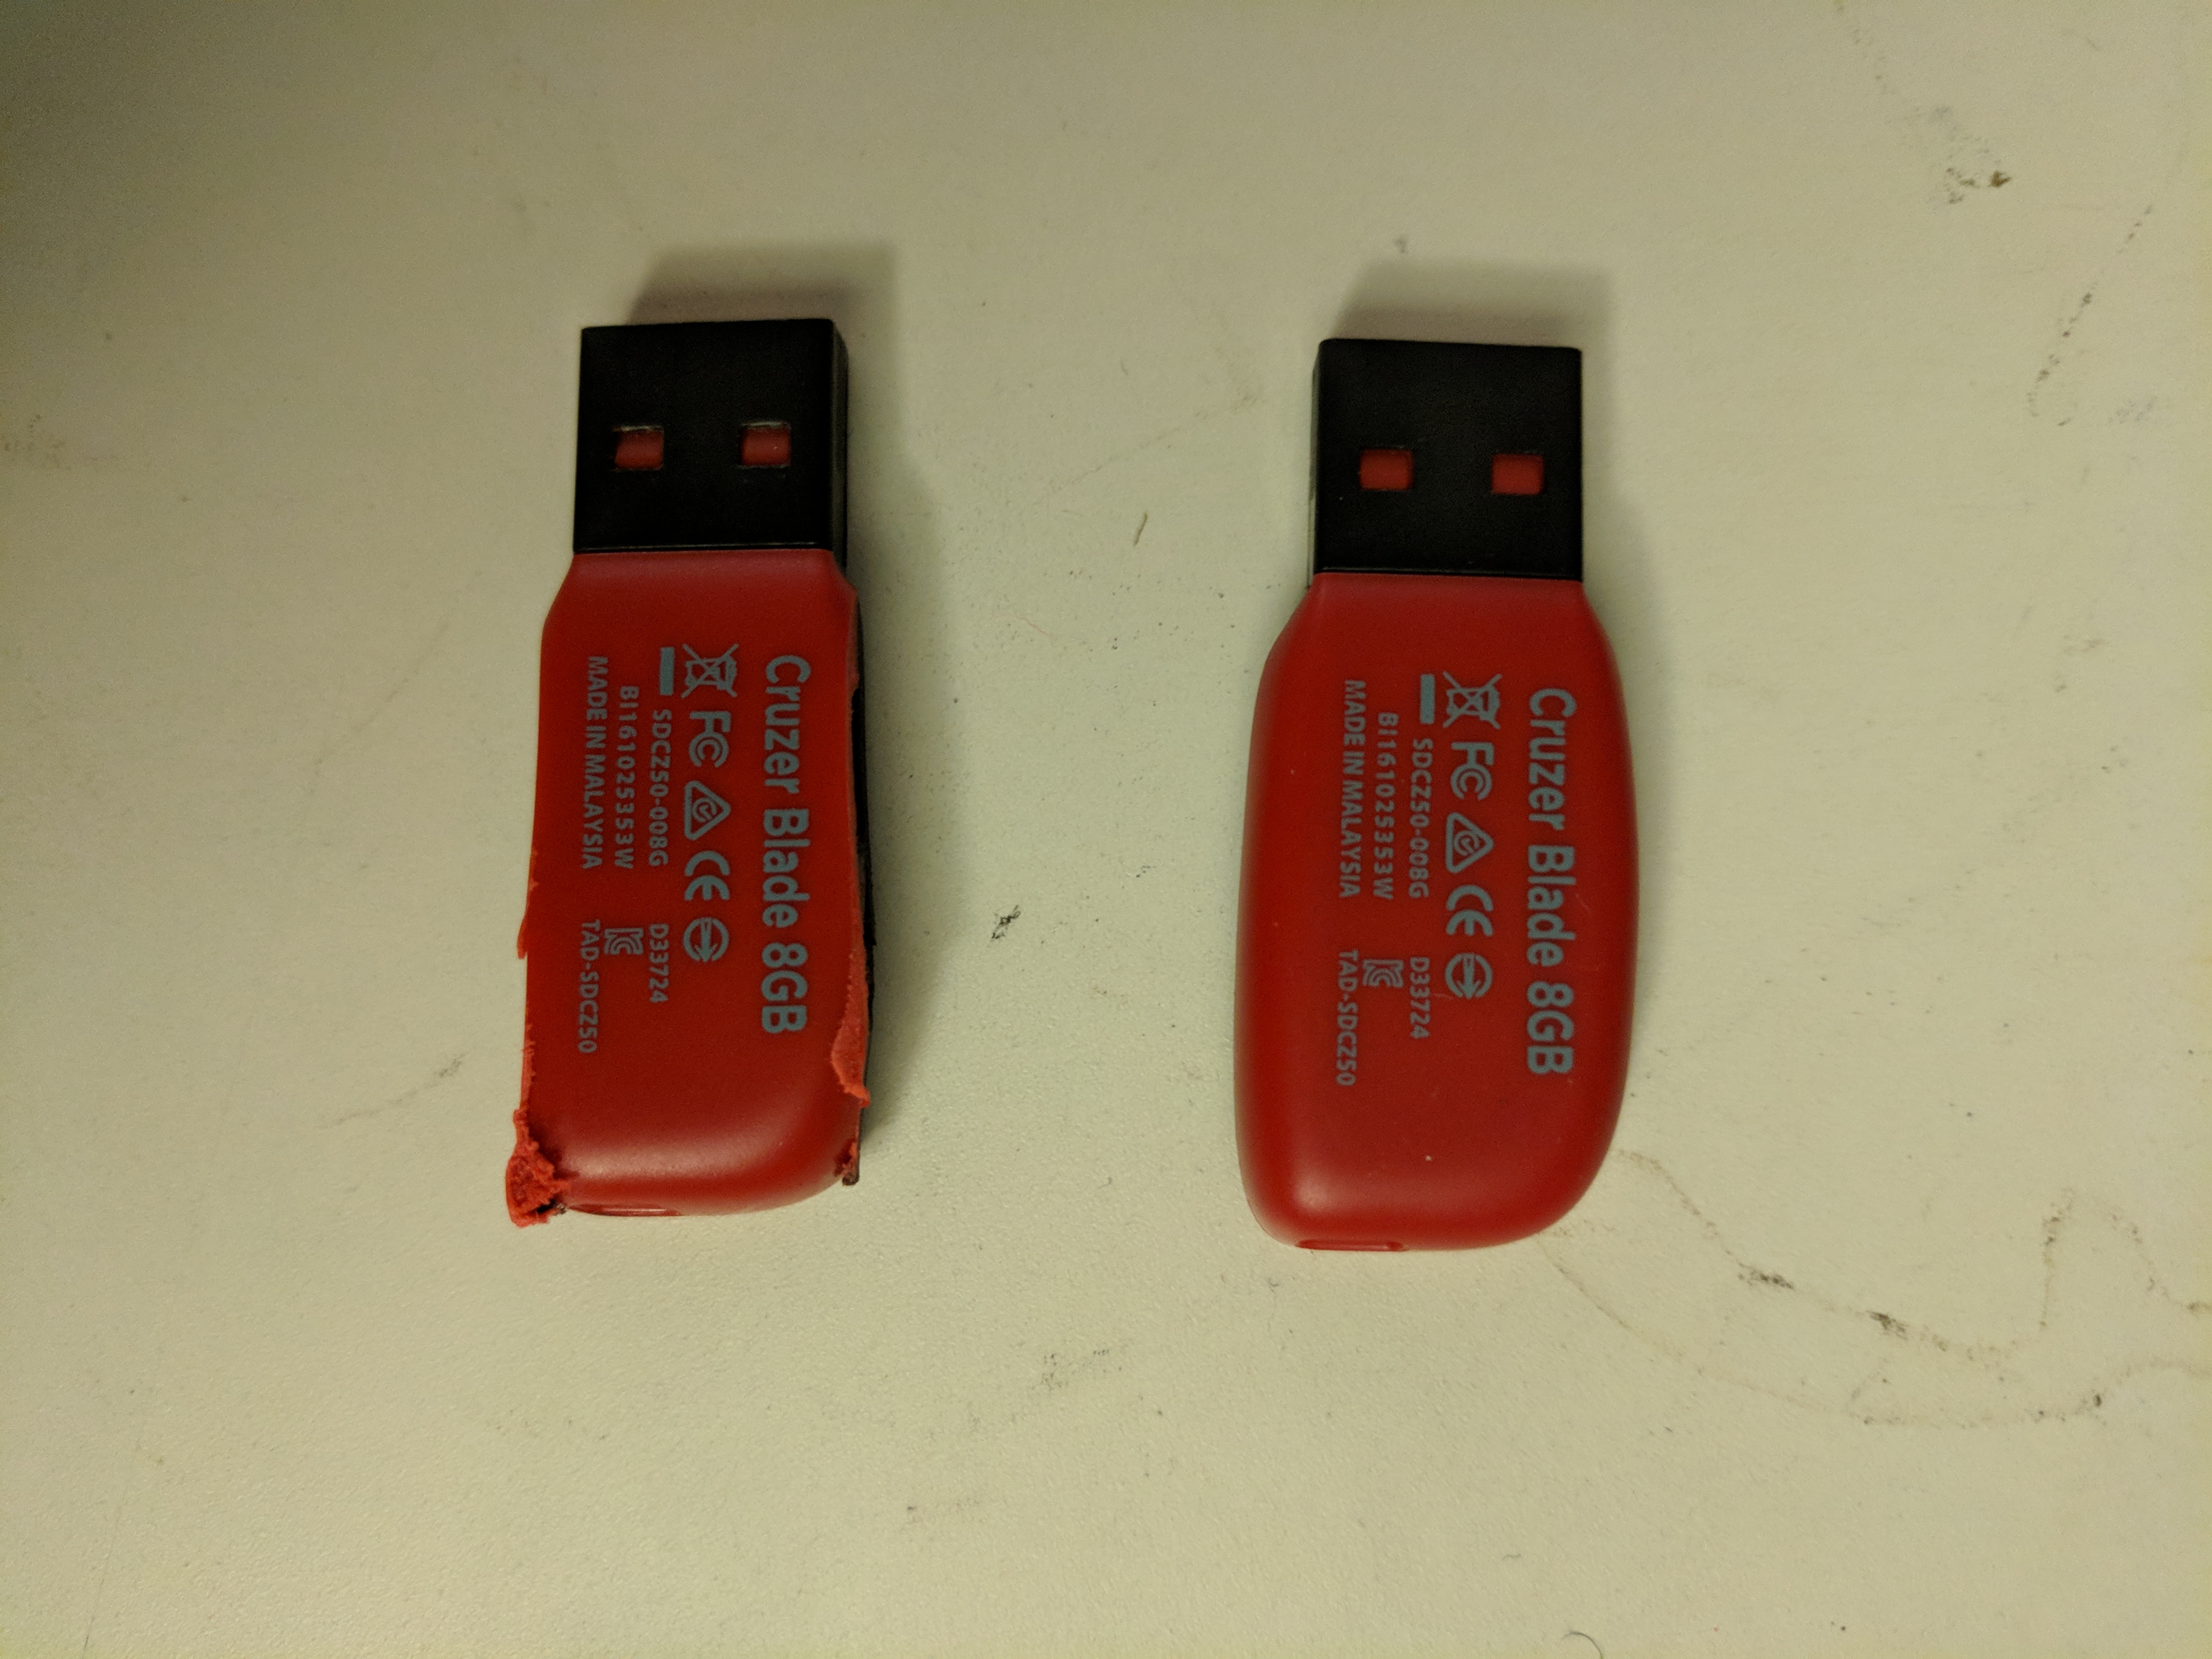 Two Sandisk Cruzer Blade 8GB USB thumb drives side by side.  The one on the left has had the case ground down to make it narrower.